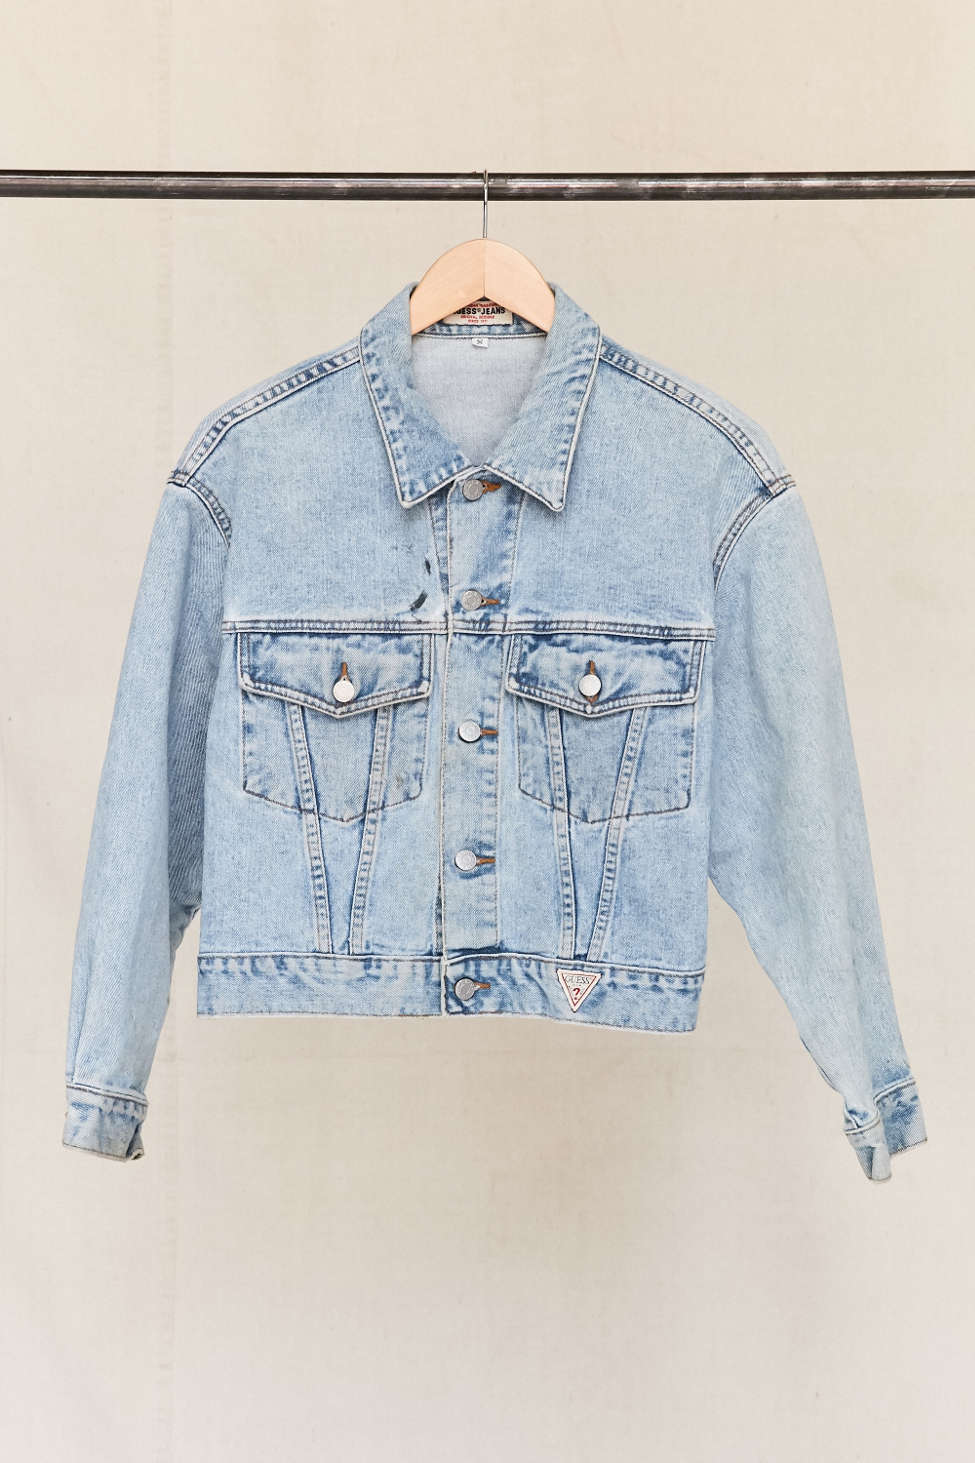 Vintage Guess 90s Denim Jacket Urban Outfitters